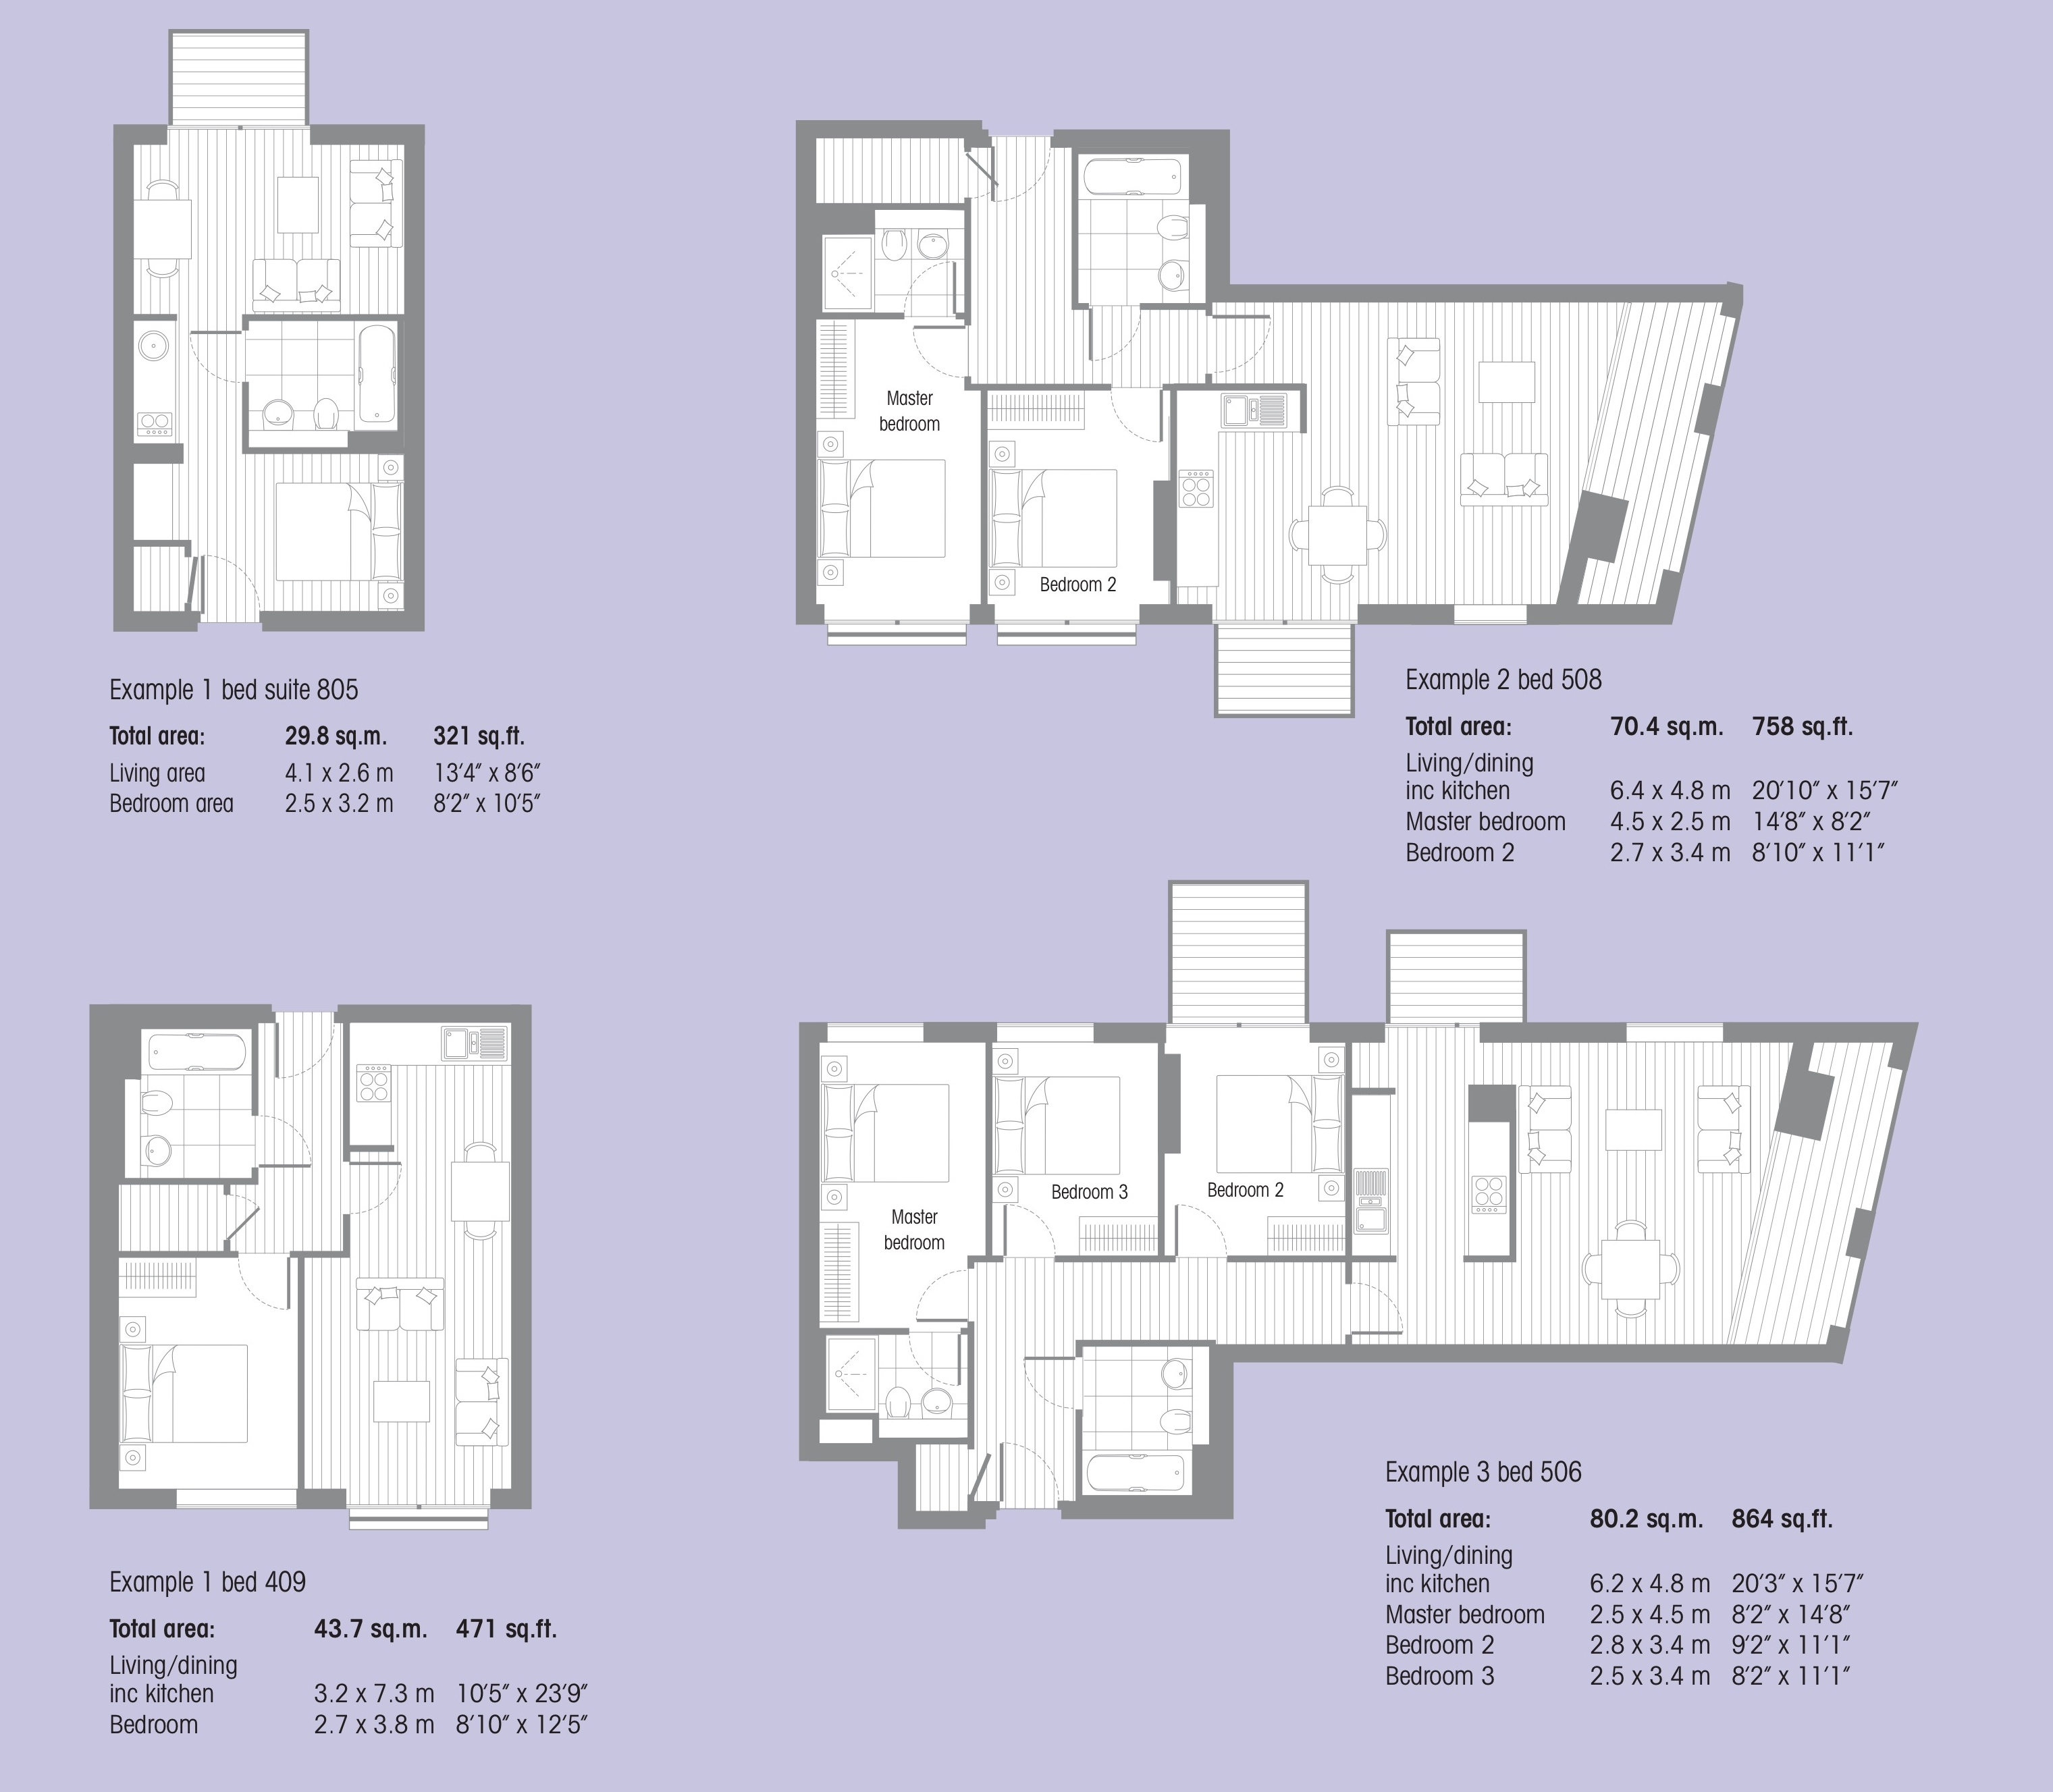 lincoln plaza floor plans tower hamlets london victorian london buildings monuments and museums